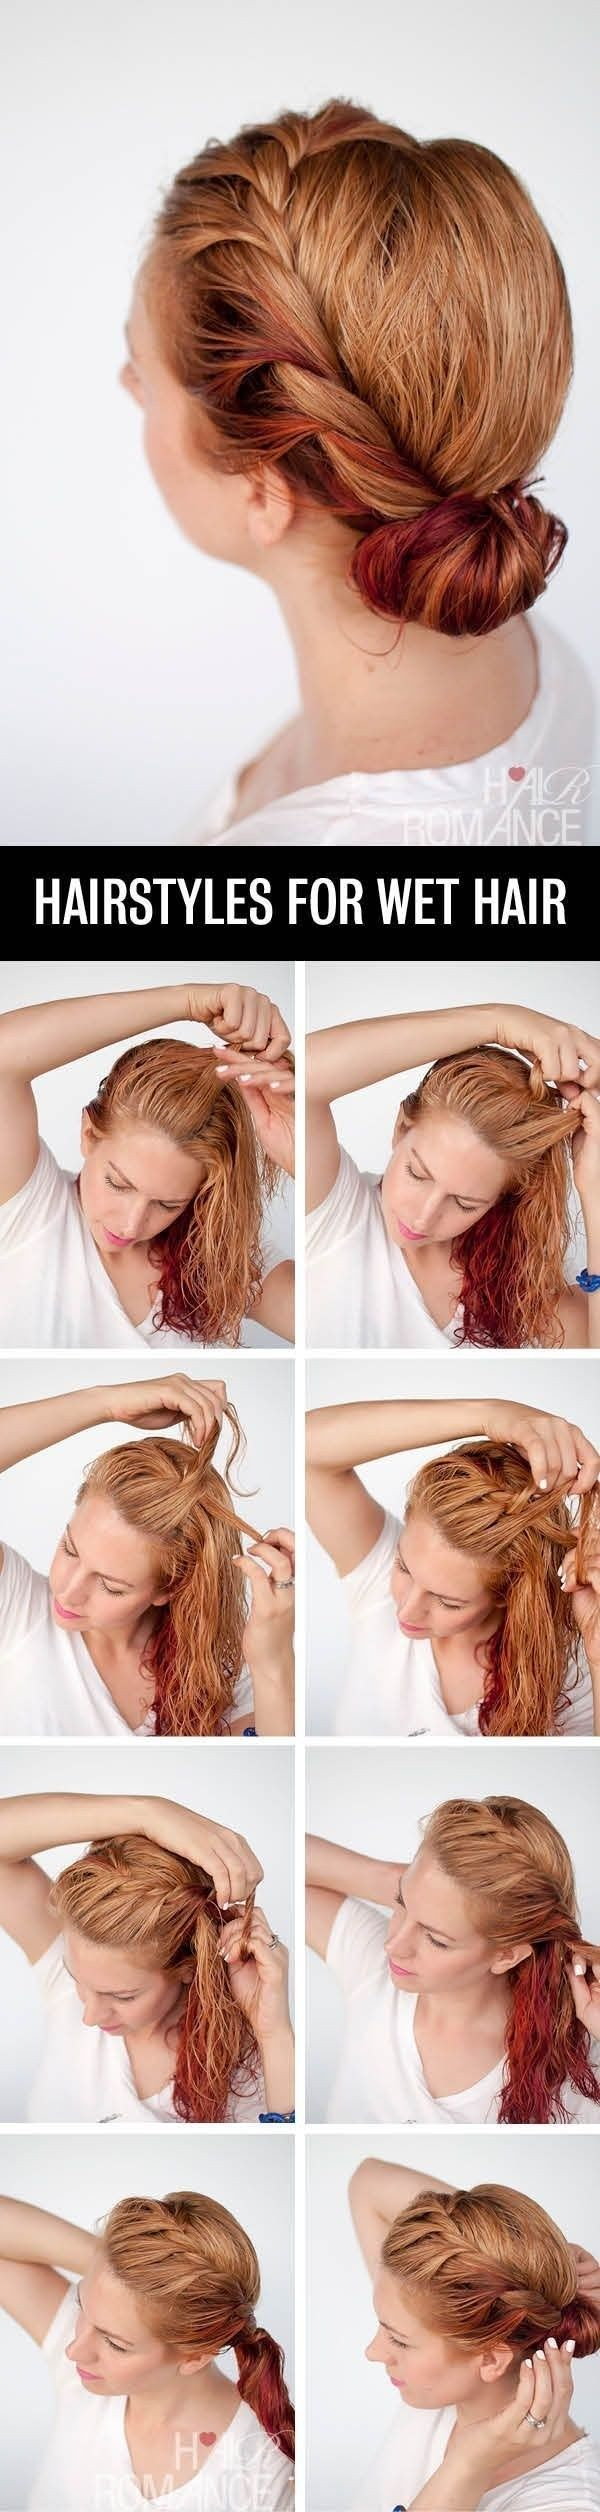 15 super easy hairstyles to try for back to school   crown braids